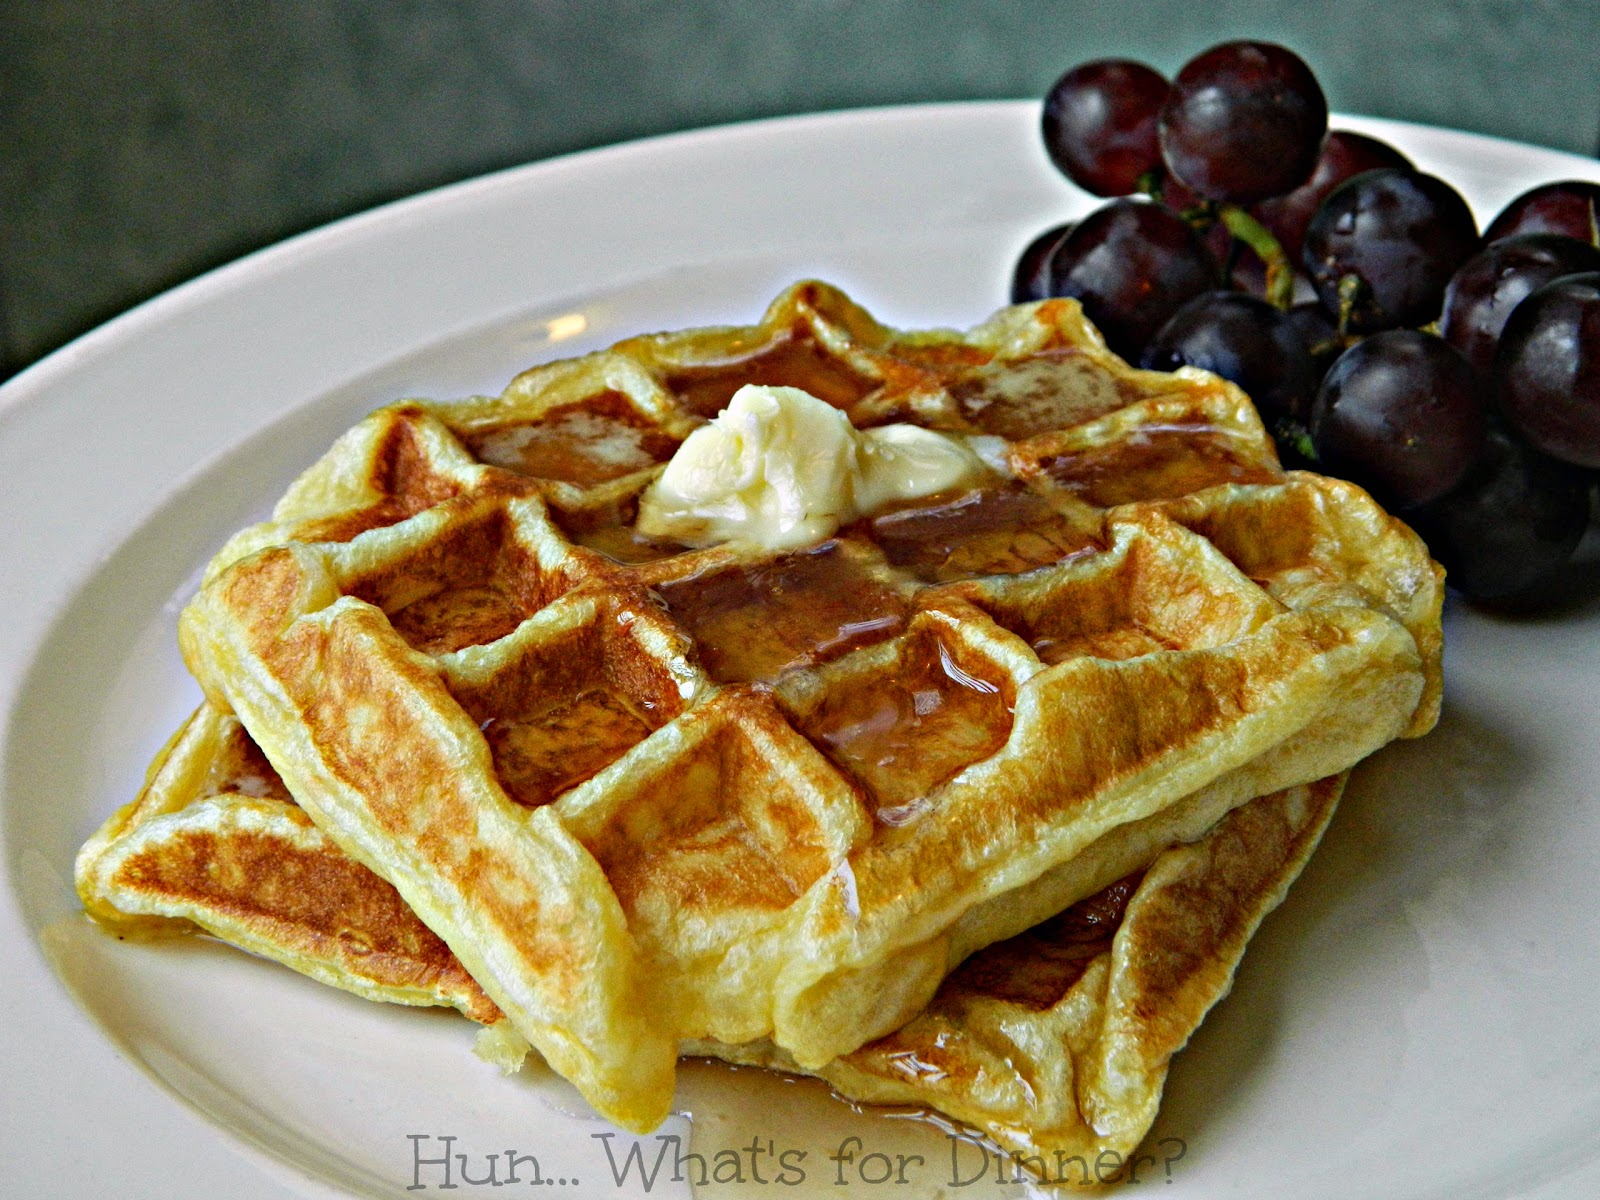 Crispy Waffles | Hun... What's for Dinner?